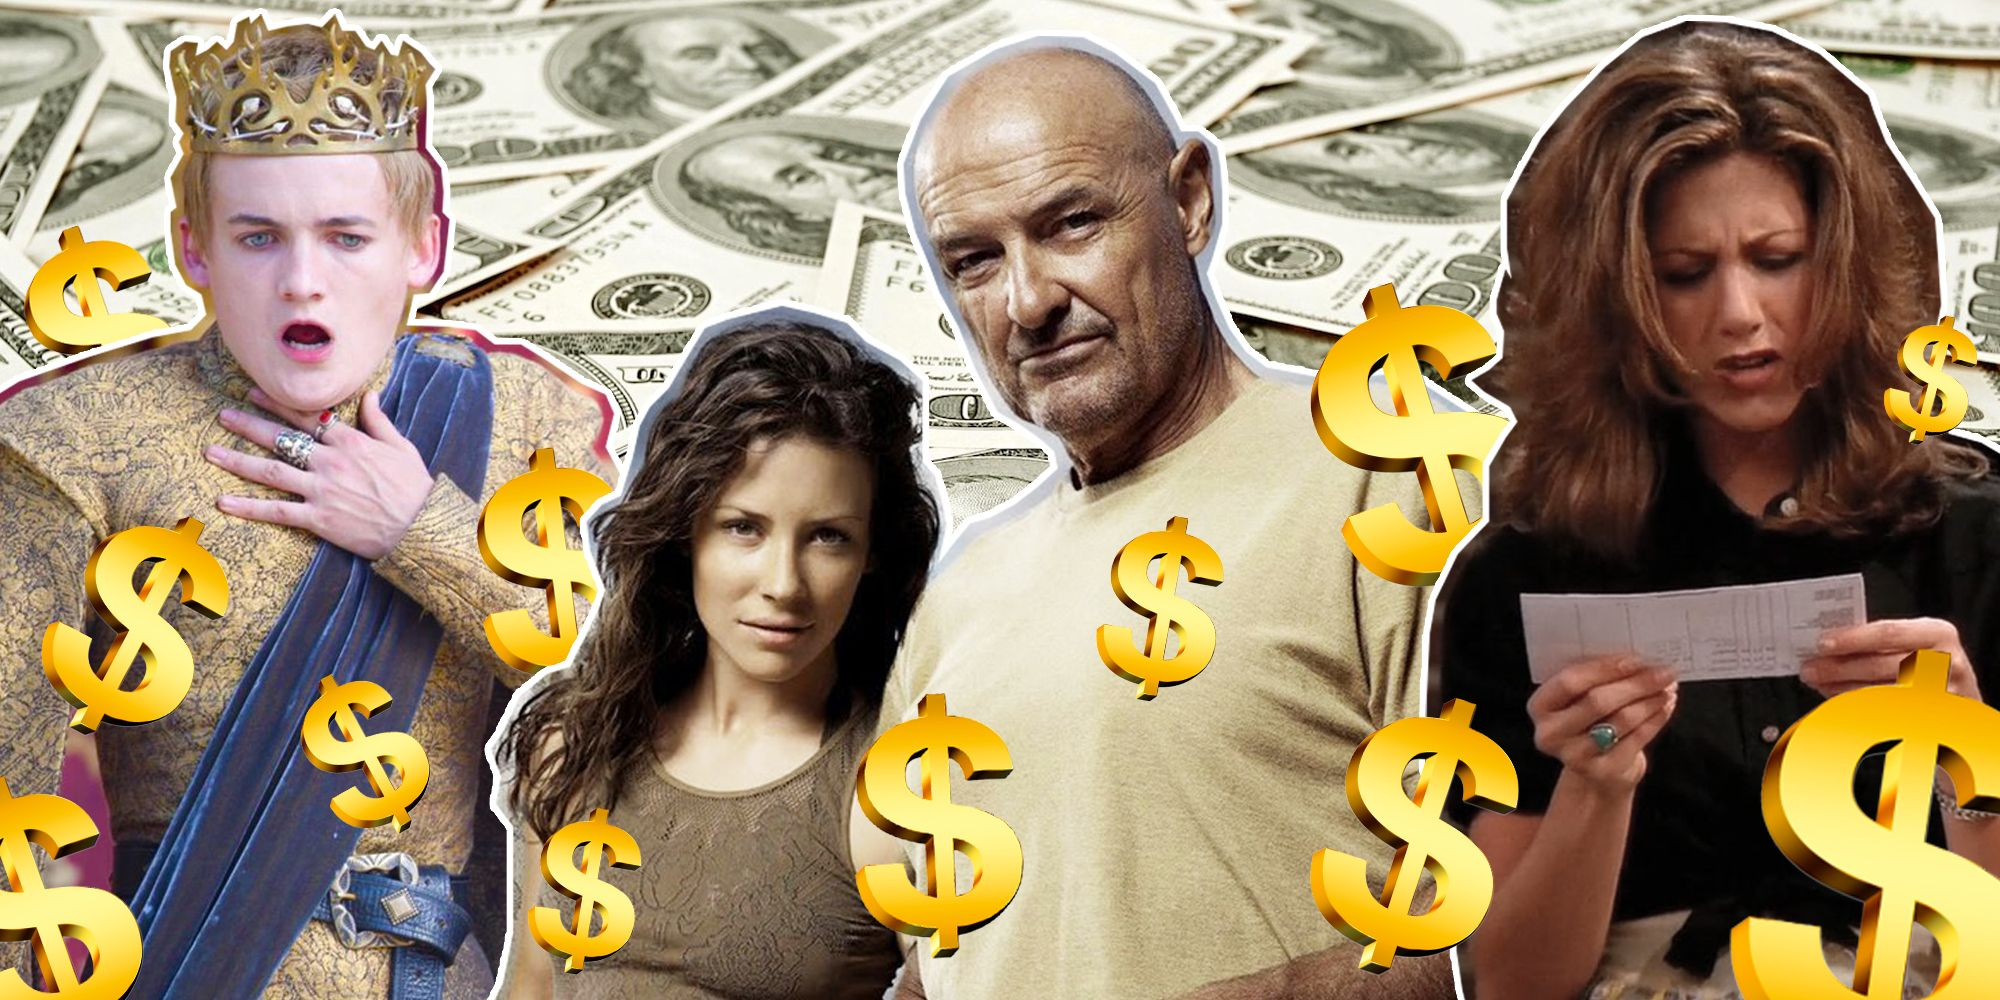 The 15 most expensive shows of all time, ranked